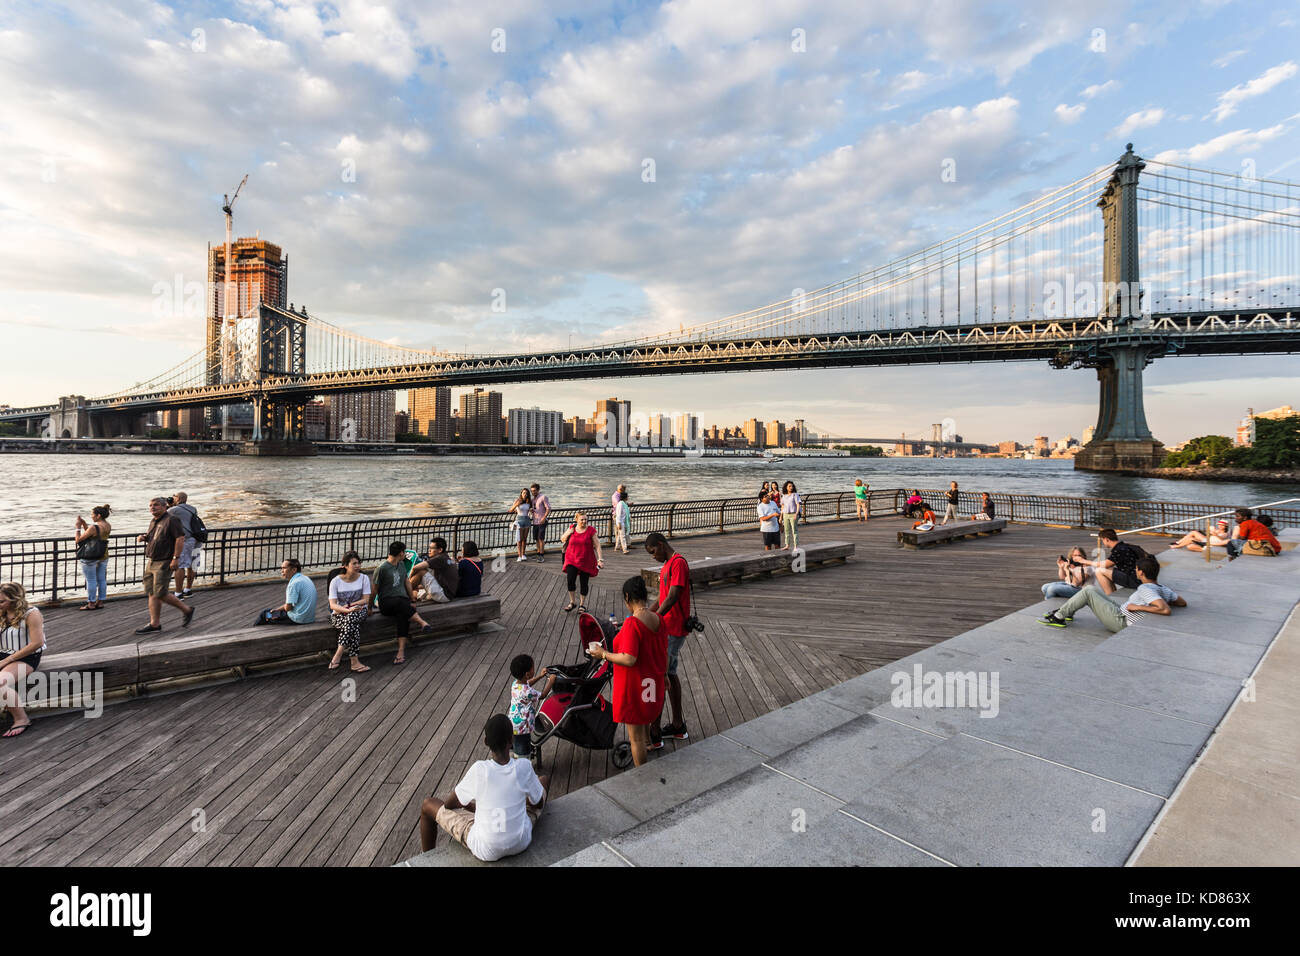 NEW YORK CITY - JULY 3, 2017: People enjoy the sunset over the Manhattan bridge and the East river from the Brooklyn - Stock Image